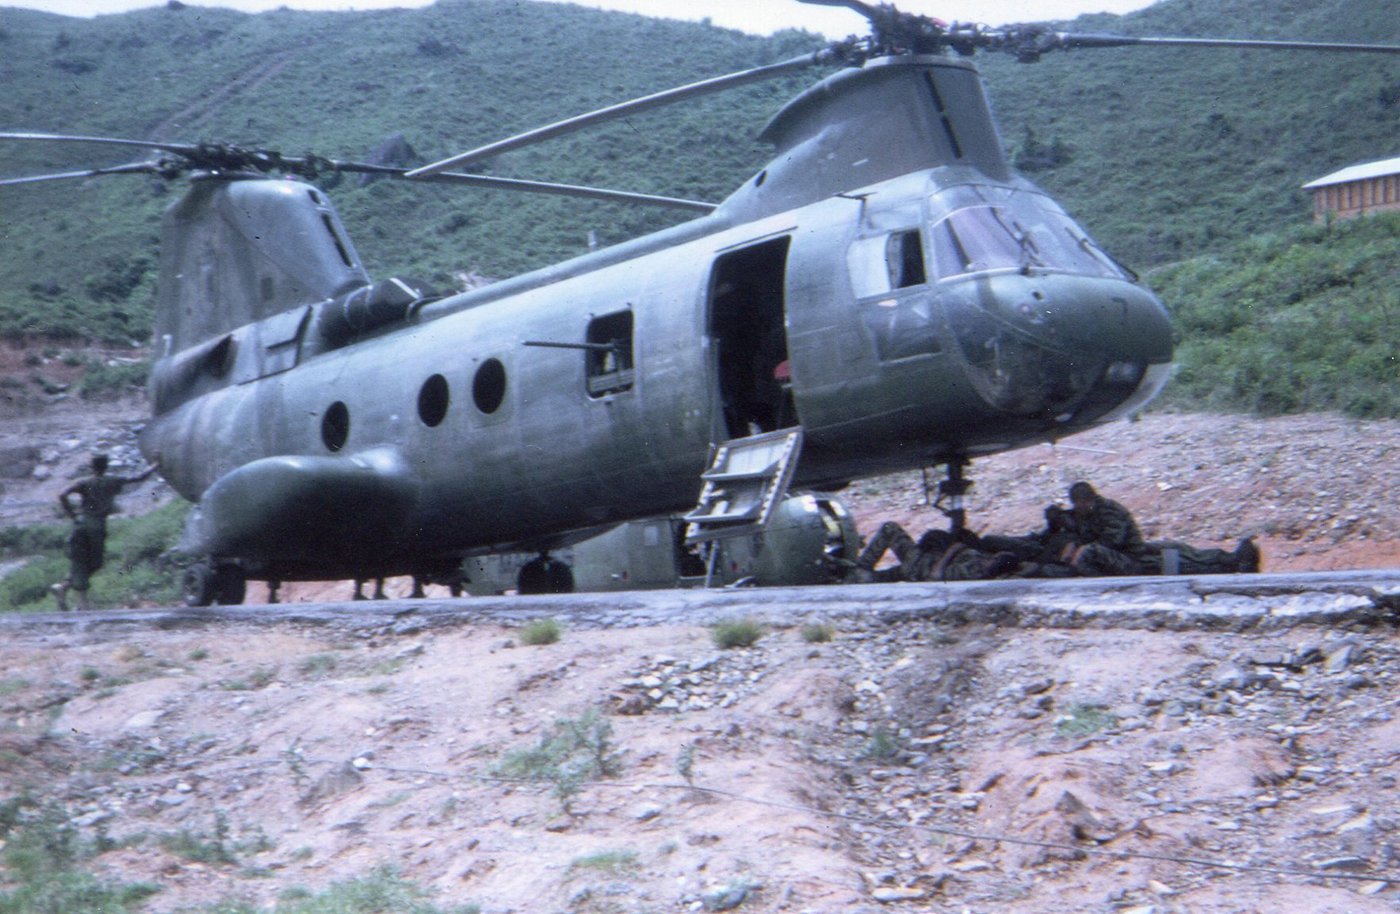 CH46 Sea Knight staged on LZ during Rough Rider duty – photo taken in December 1967